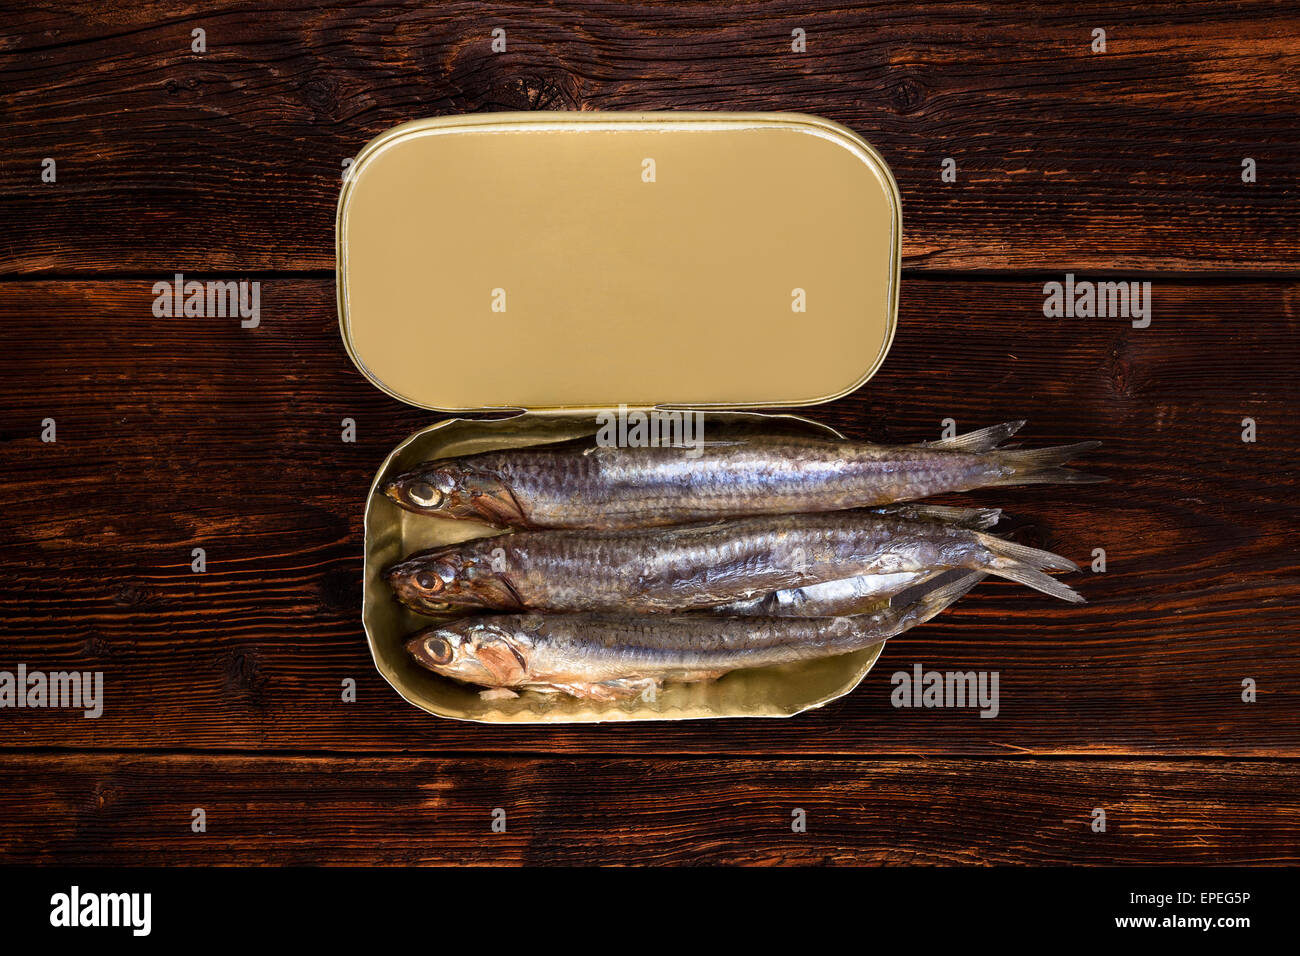 Sardines in can on old wooden textured background with lemon piece. Culinary healthy fish eating. - Stock Image